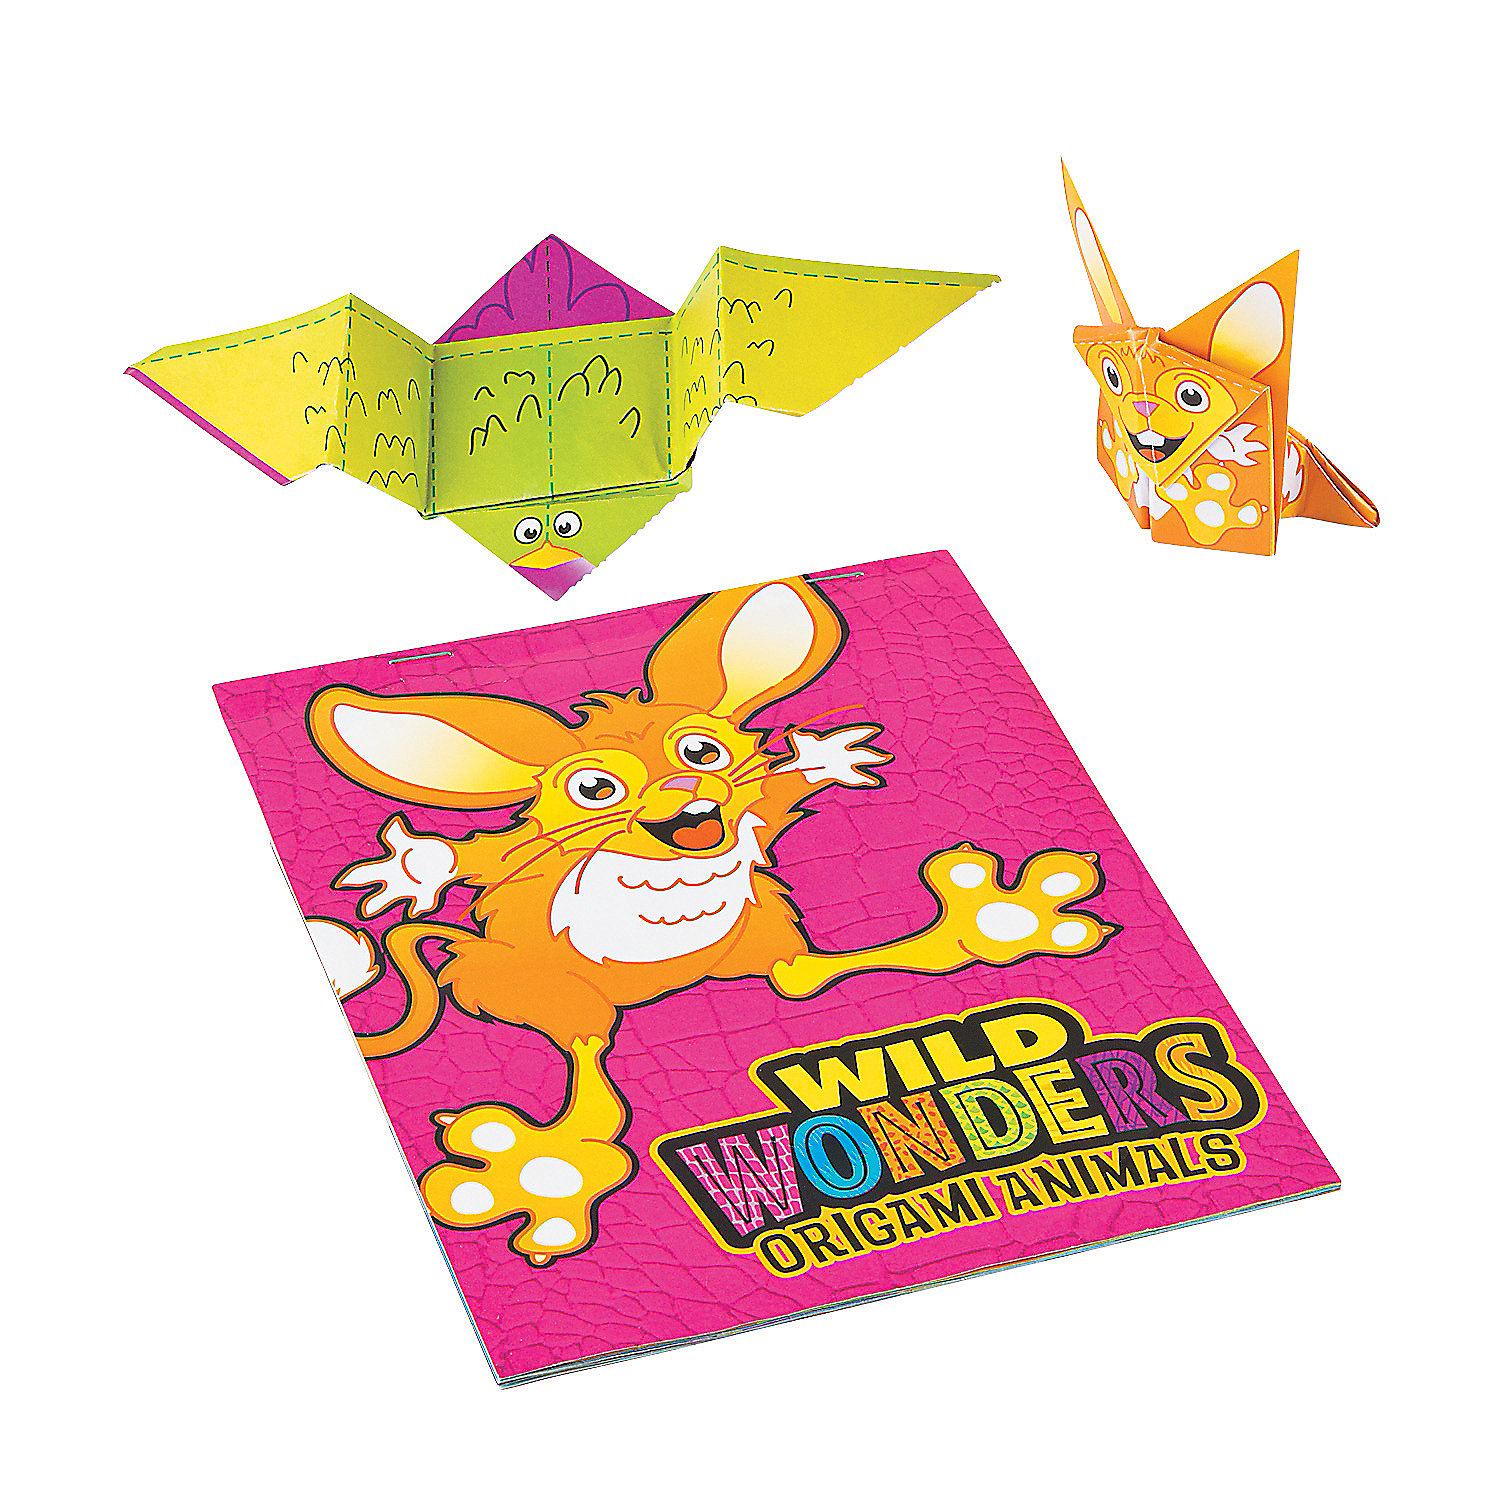 wild wonders vbs origami booklets activity books